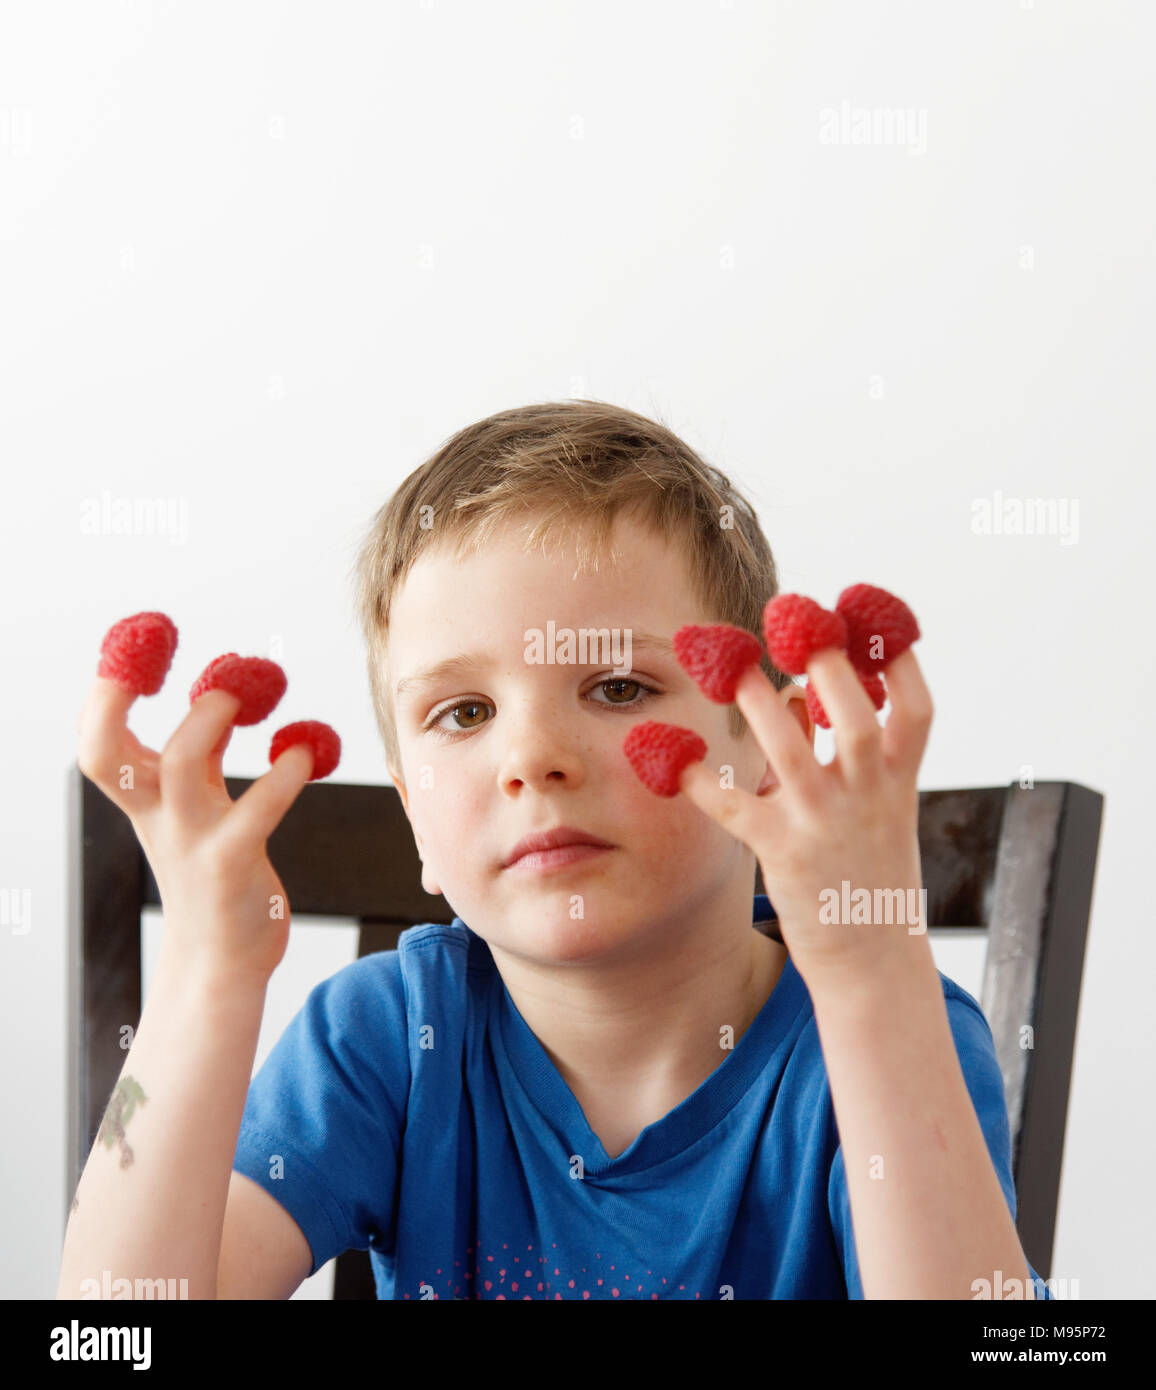 A little boy (5 yrs old) with raspberries on his fingers Stock Photo